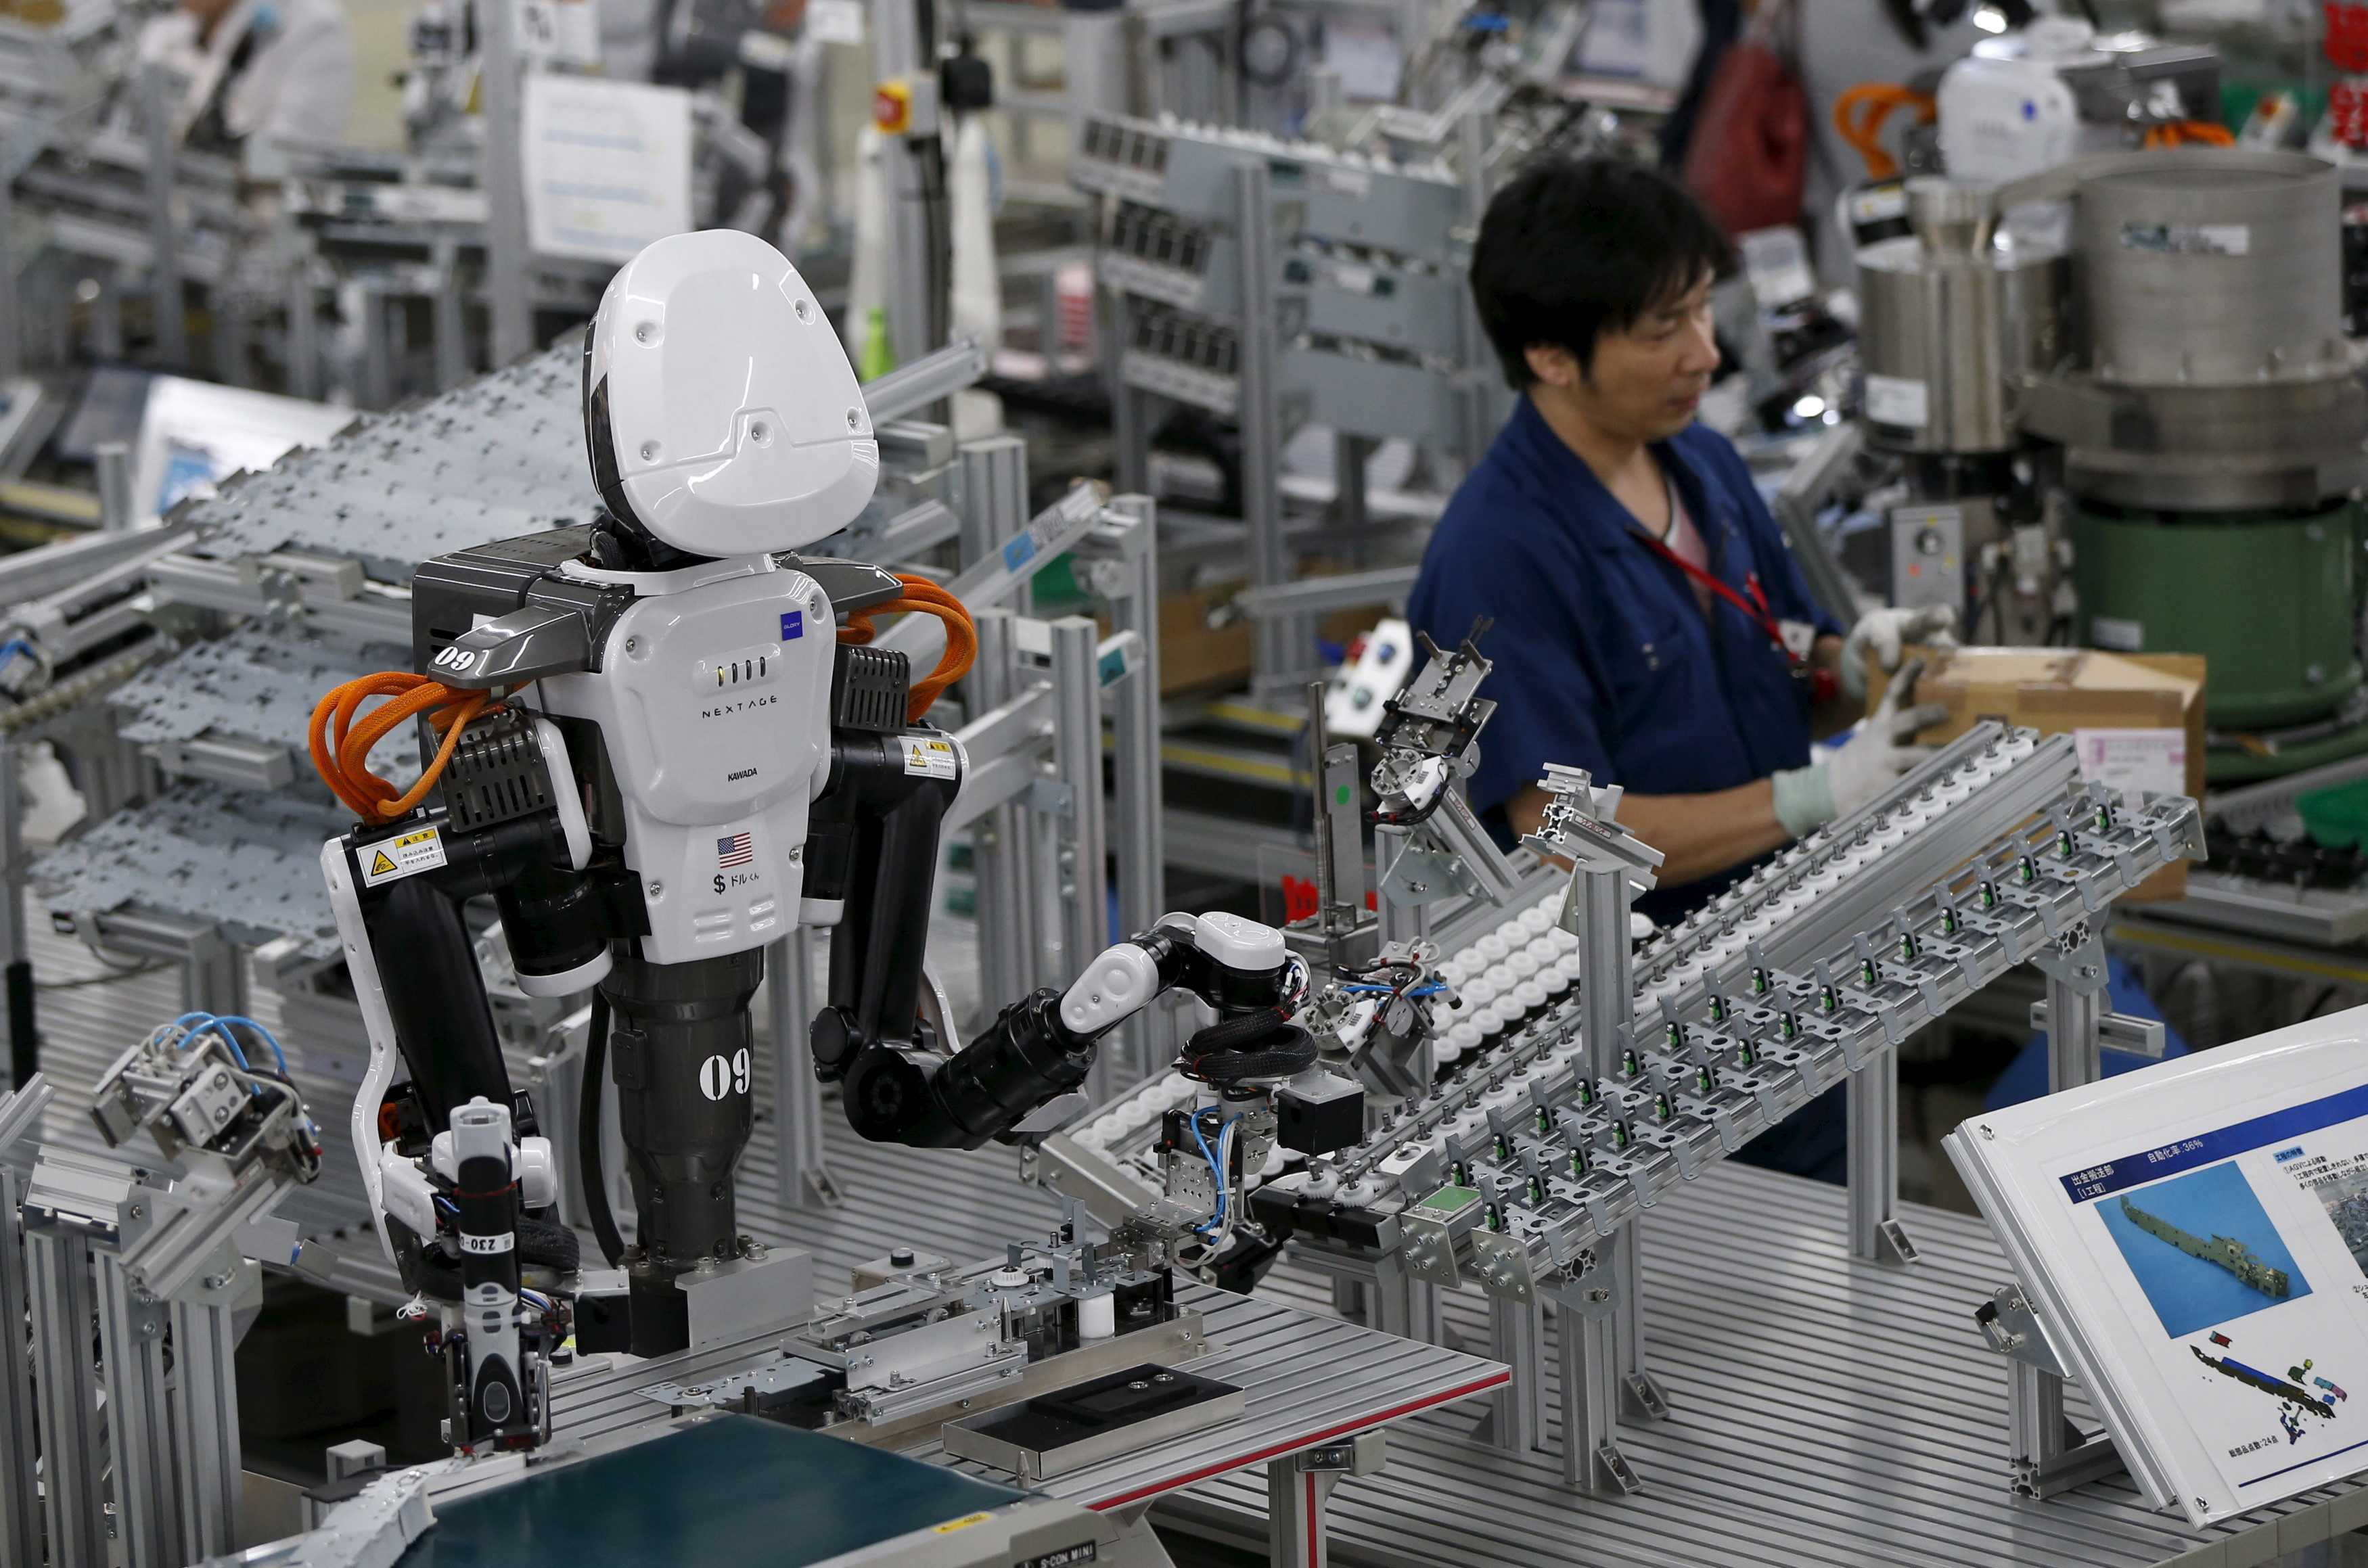 A humanoid robot works side by side with employees in the assembly line at a Japanese factory